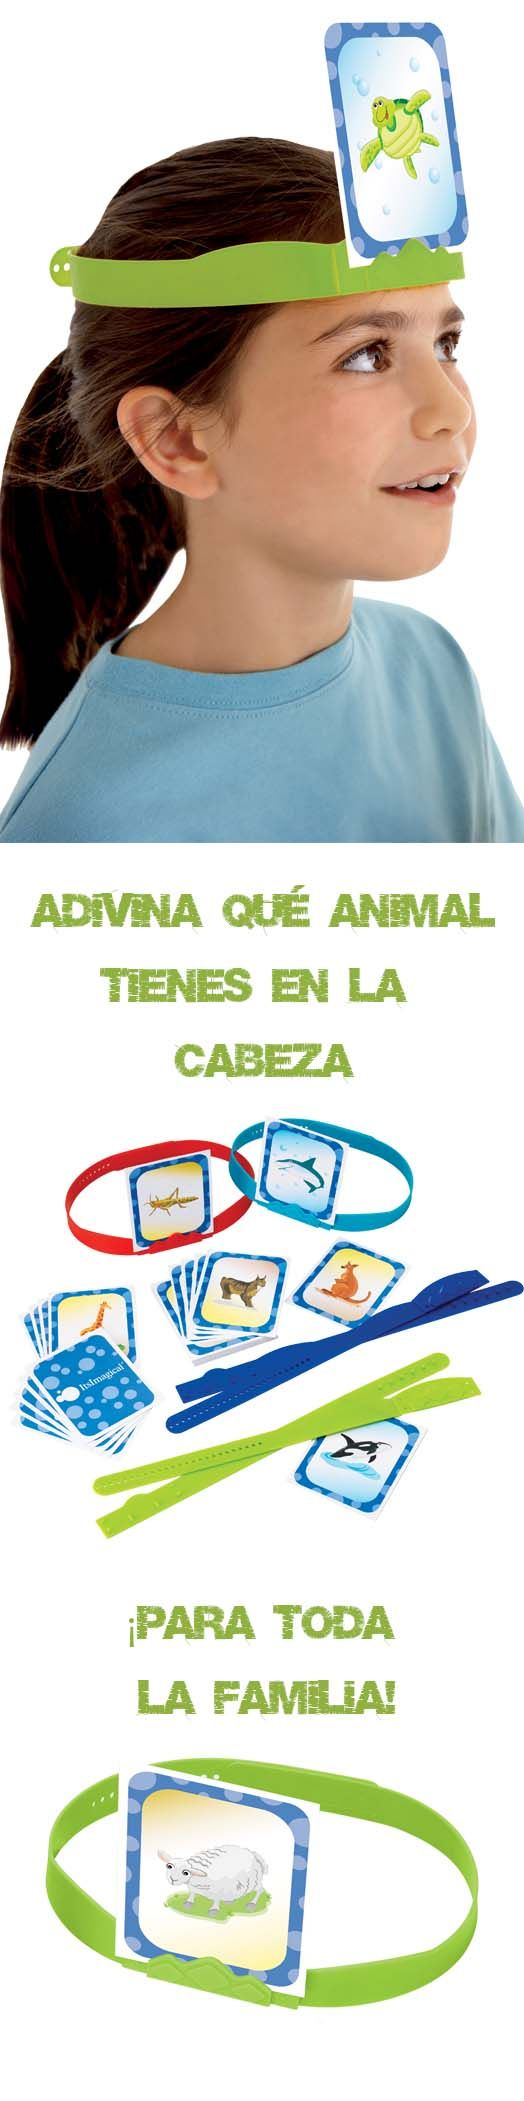 Juego Adivina Quien Es Table Games Pinterest Games Games For